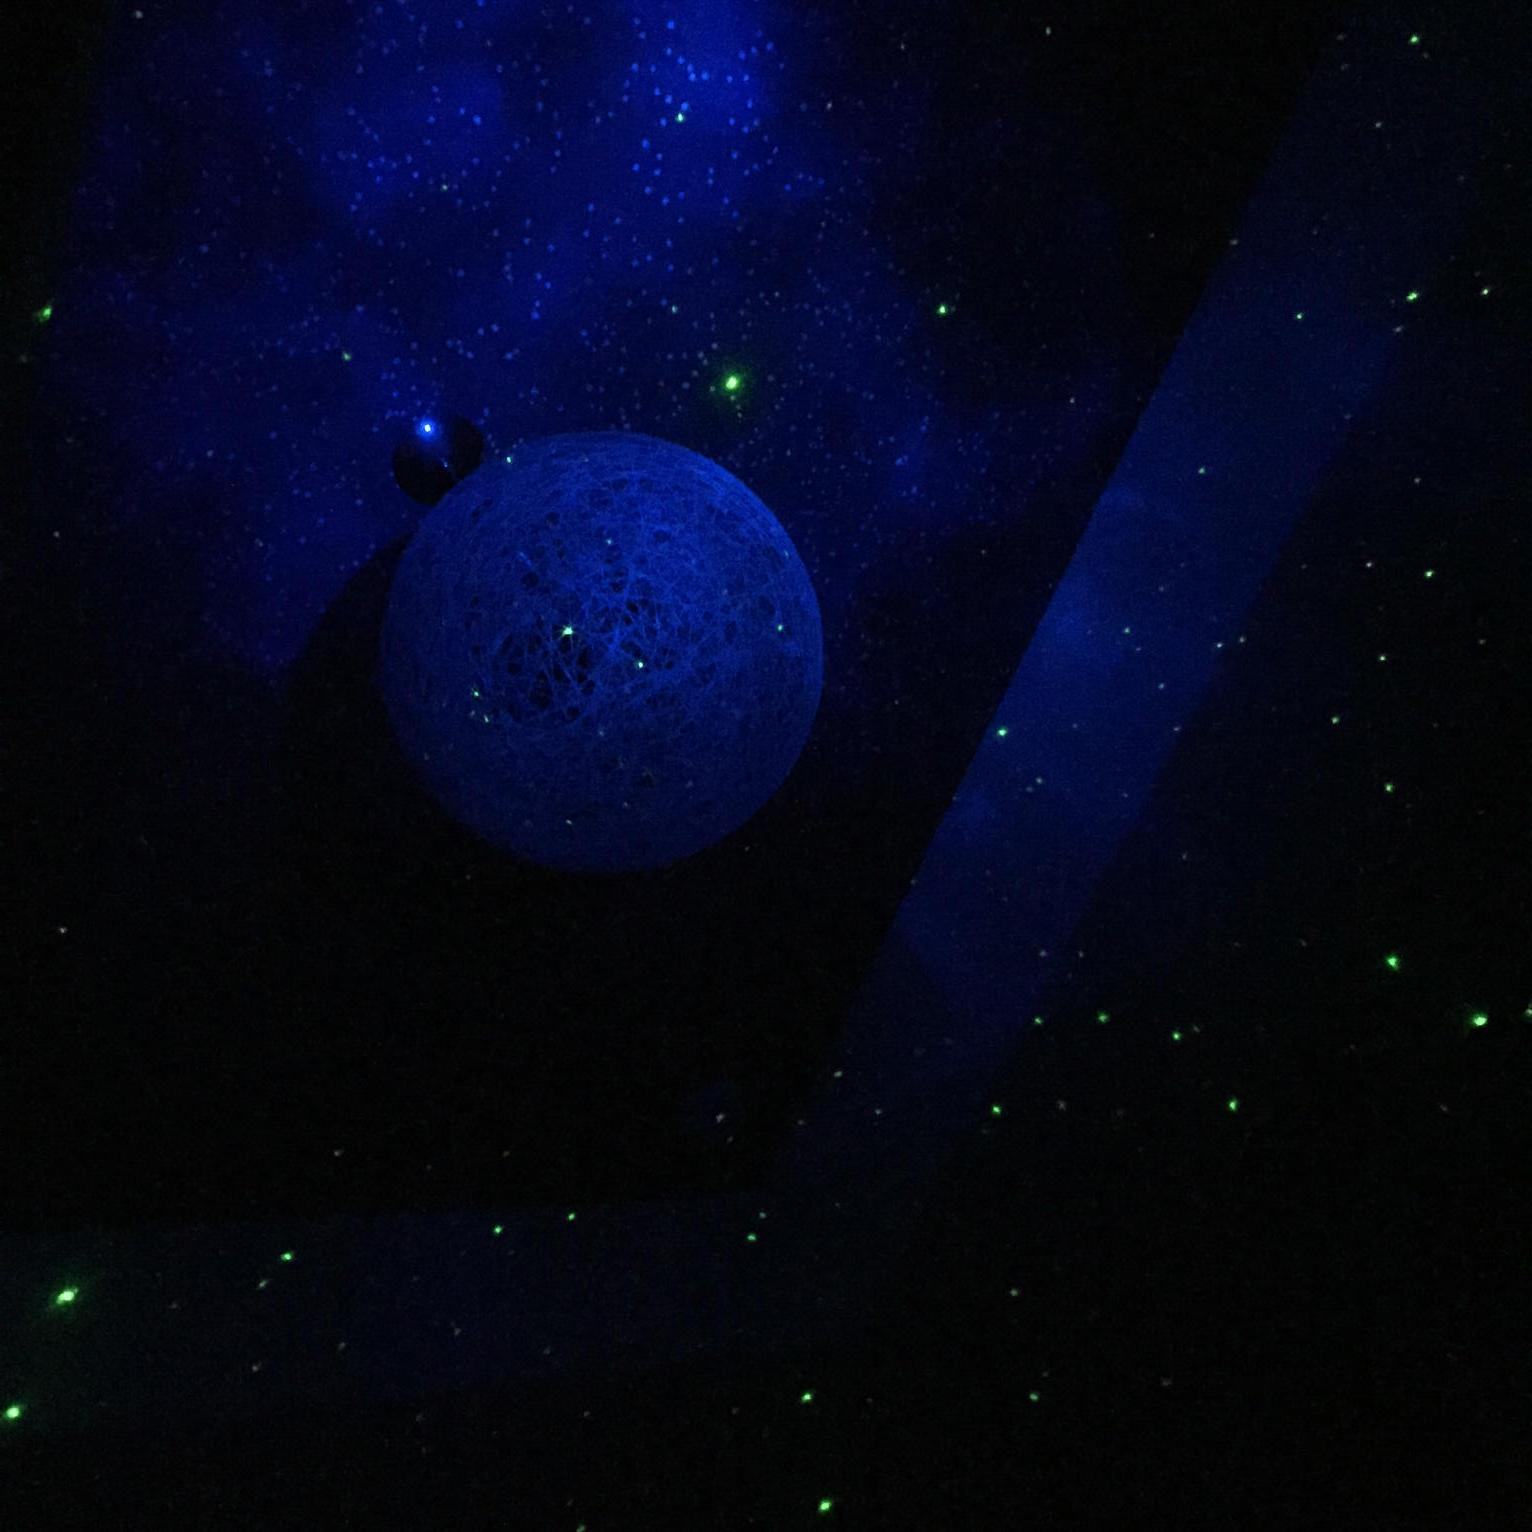 Sleeping in a bunk bed with stars on the ceiling king of night. #blessed http://t.co/lPlR6SKPmq